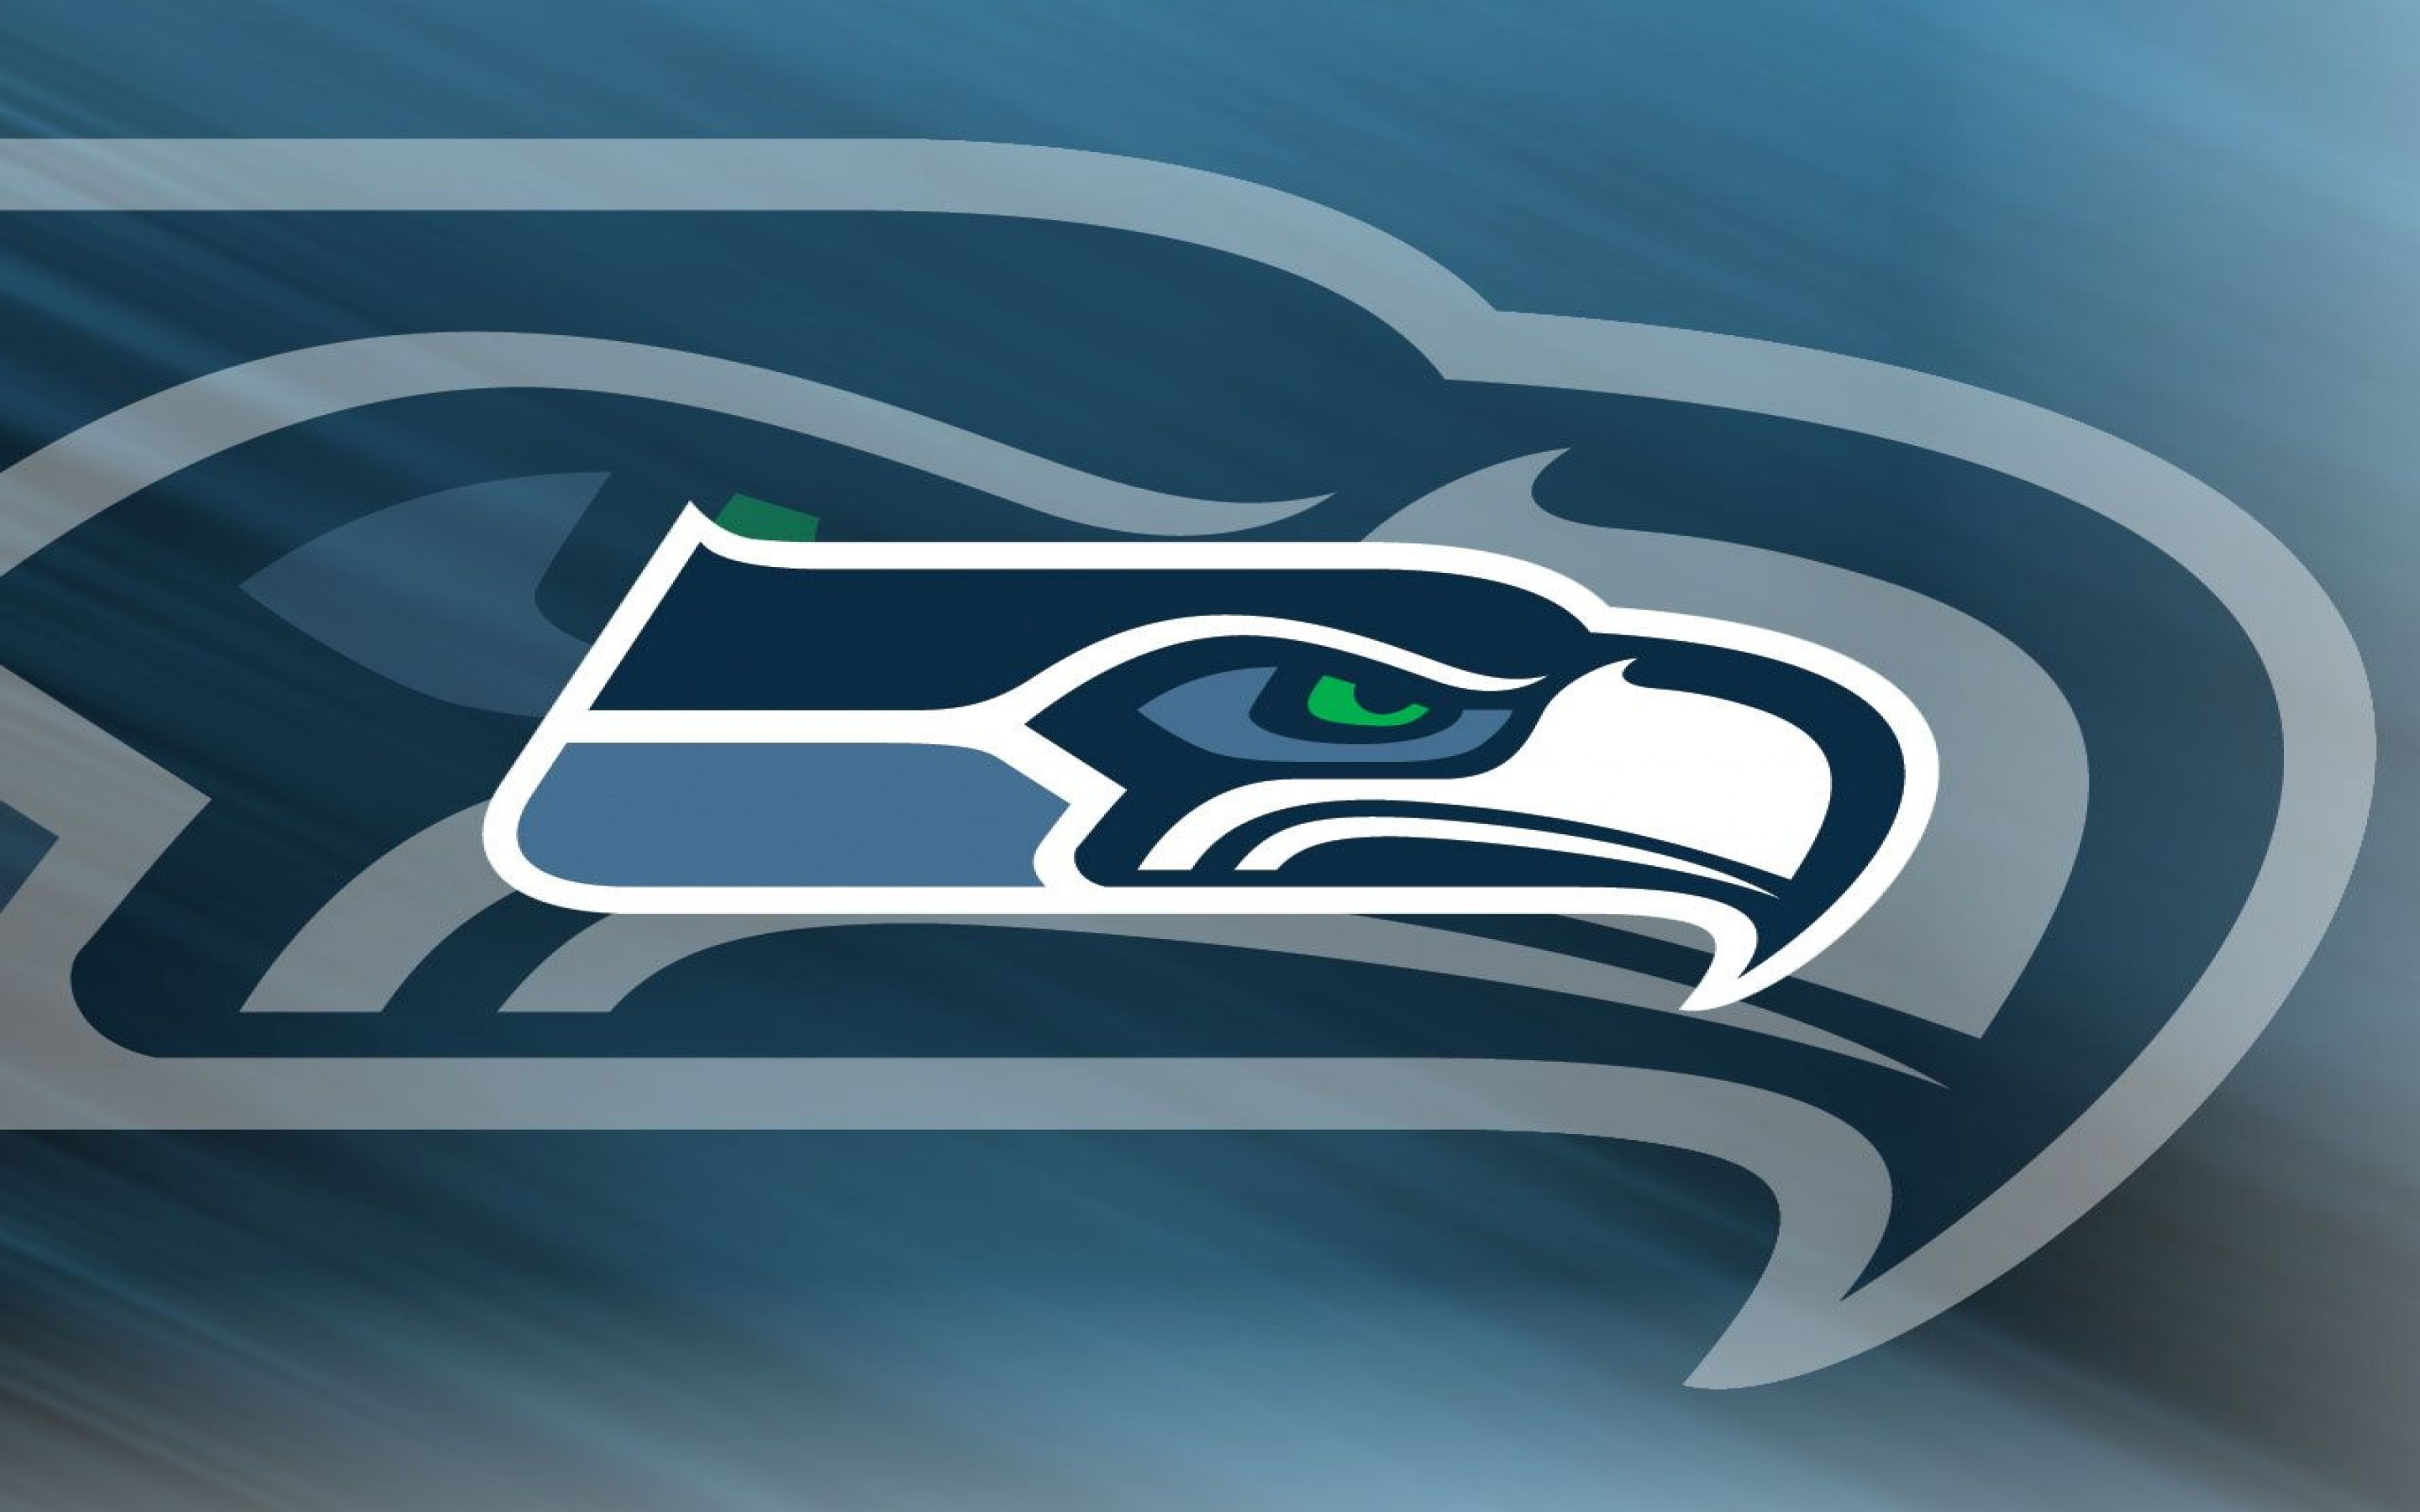 seahawks high resolution wallpaper - photo #1